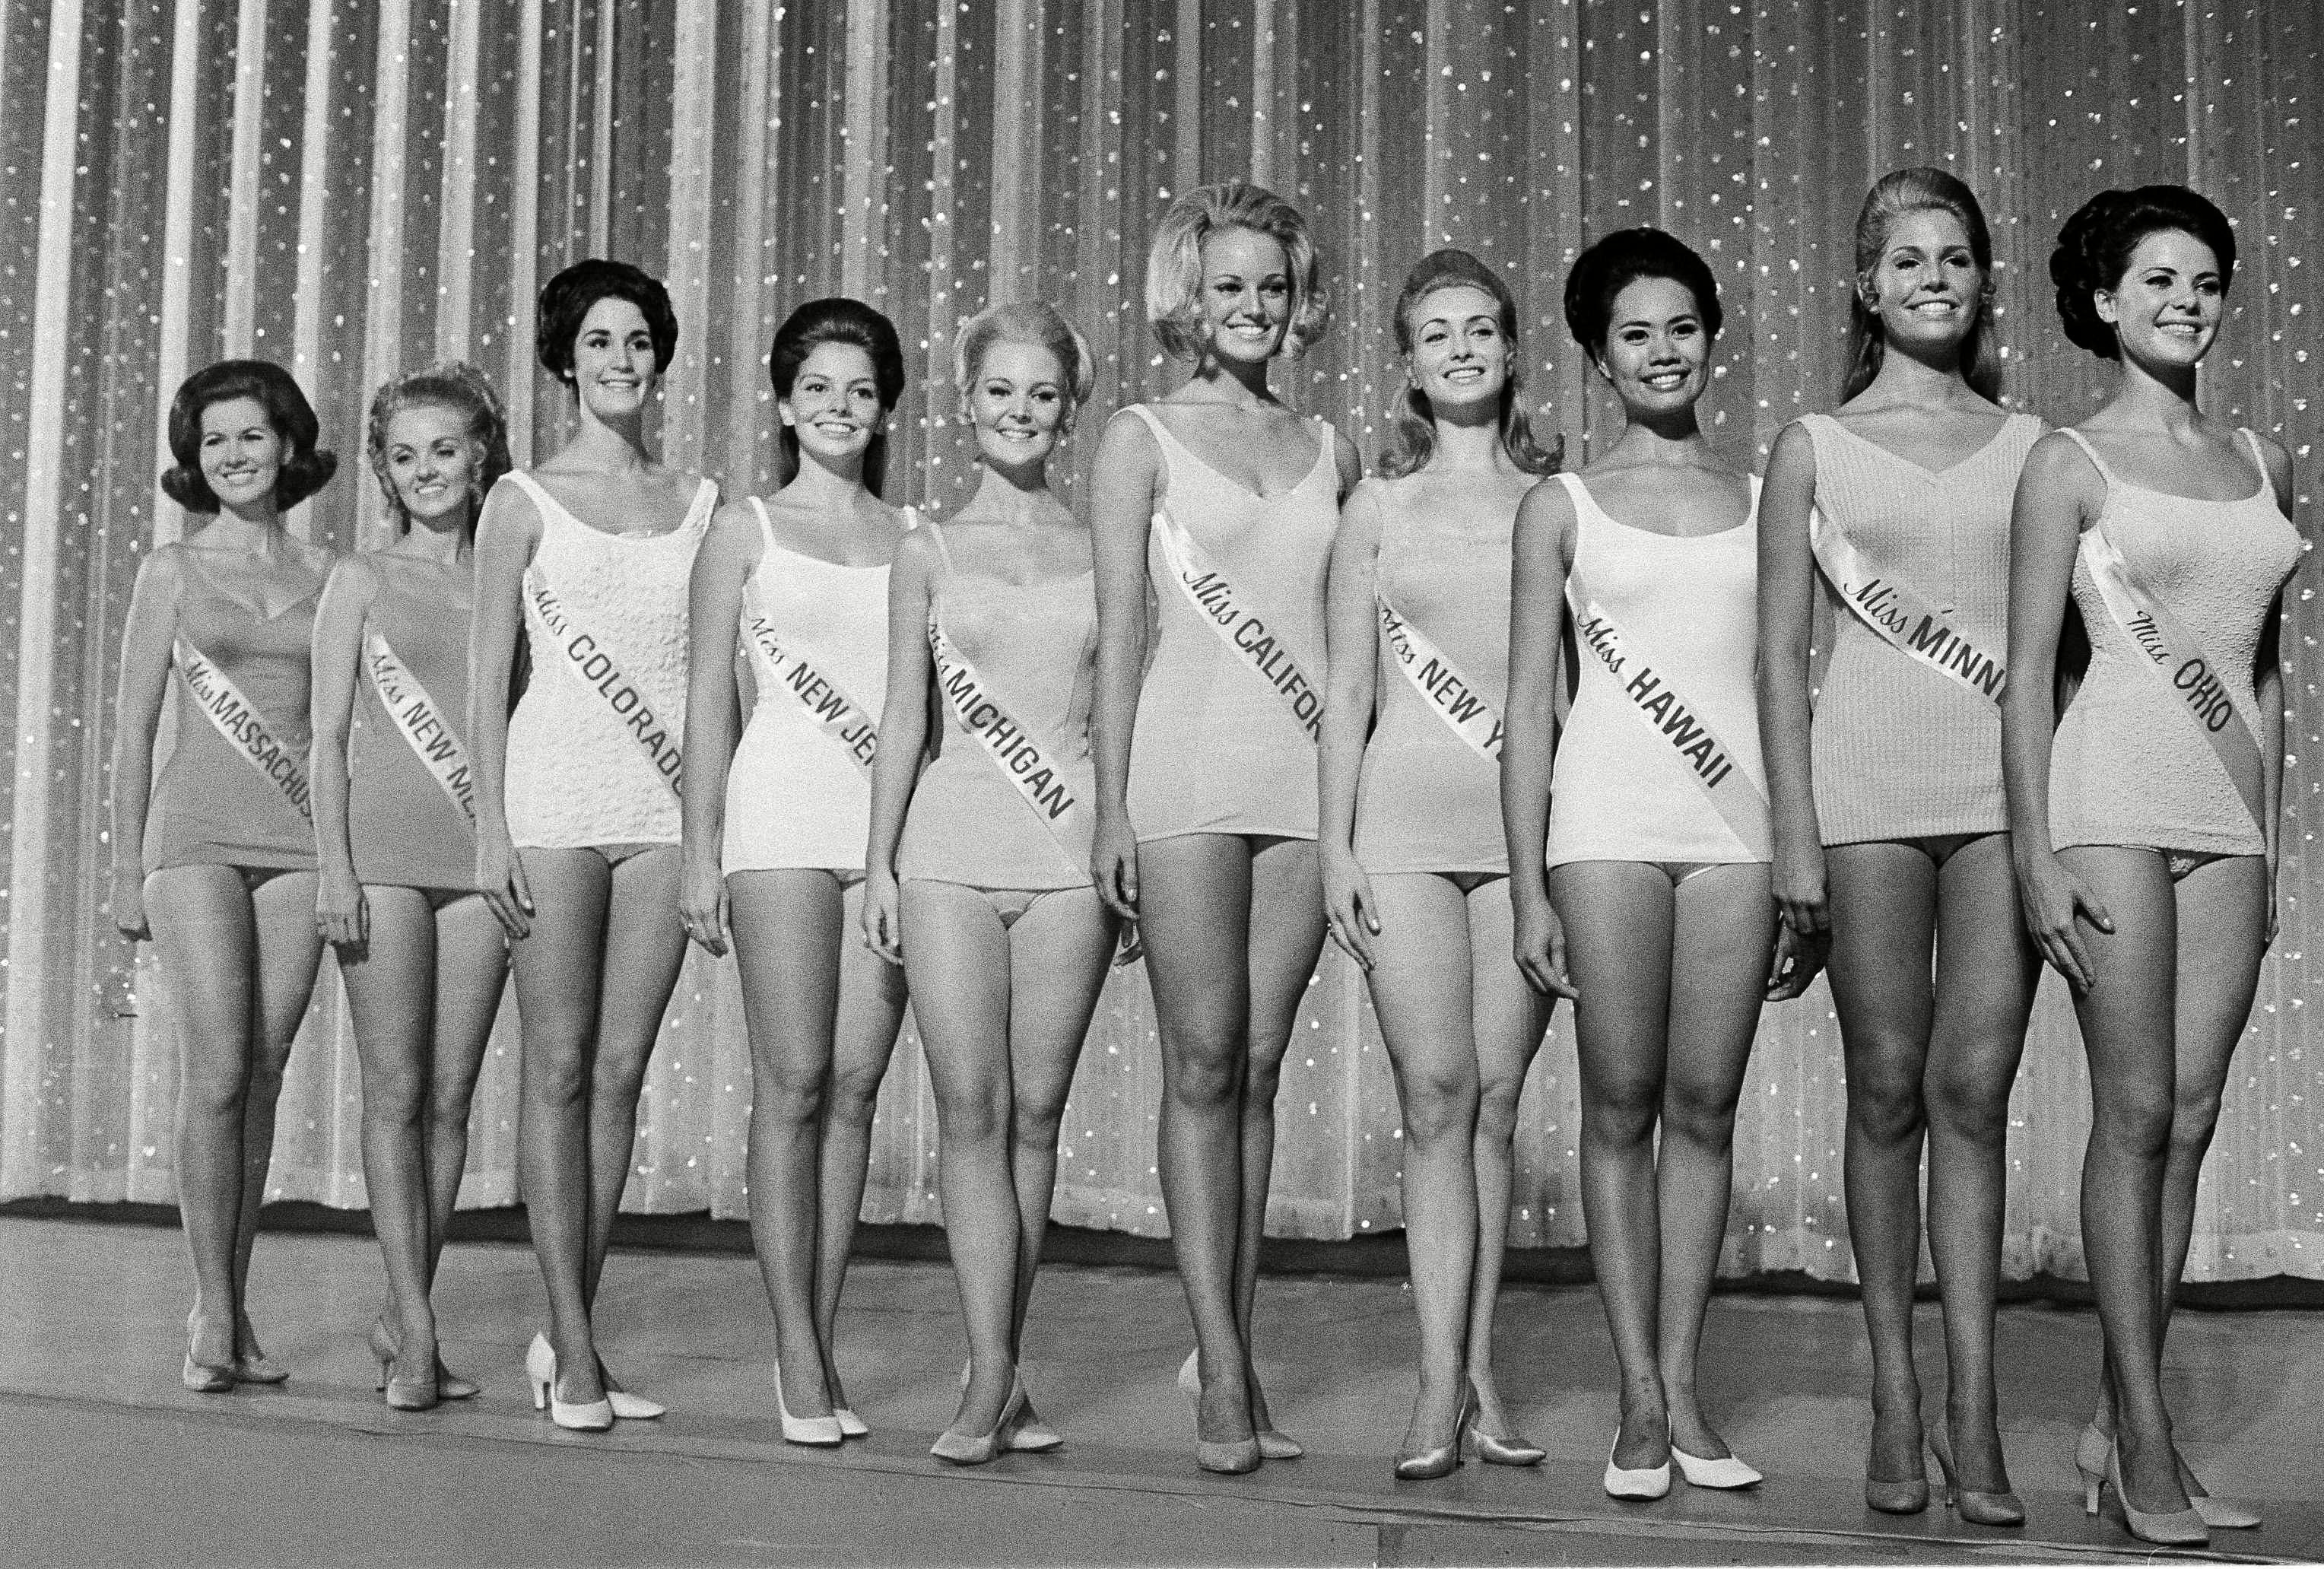 Mandatory Credit: Photo by Bill Achatz/AP/Shutterstock (6639187f) Pamela Anne Eldred, Susan Ellen Anton, Judith Mendenhall, Cheryl Carter, Kathy Baumann, Georgia Hossfeld, Pat Brummett, Adria Easton, Linda Trybus; Sheryl Akaka Ten semi-finalists of the Miss America pageant pose in their swimsuits in Atlantic City, N.J., . From left to right: Miss Massachusetts, Georgia Hossfeld; Miss New Mexico, Pat Brummett; Miss Colorado, Adria Easton; Miss New Jersey, Cheryl Carter; Miss Michigan, Pamela Eldred; Miss California, Susan Anton; Miss New York, Linda Trybus; Miss Hawaii, Sheryl Akaka; Miss Minnesota, Judy Mendenhall; Miss Ohio, Kathy Baumann Miss America Pageant, Atlantic City, USA